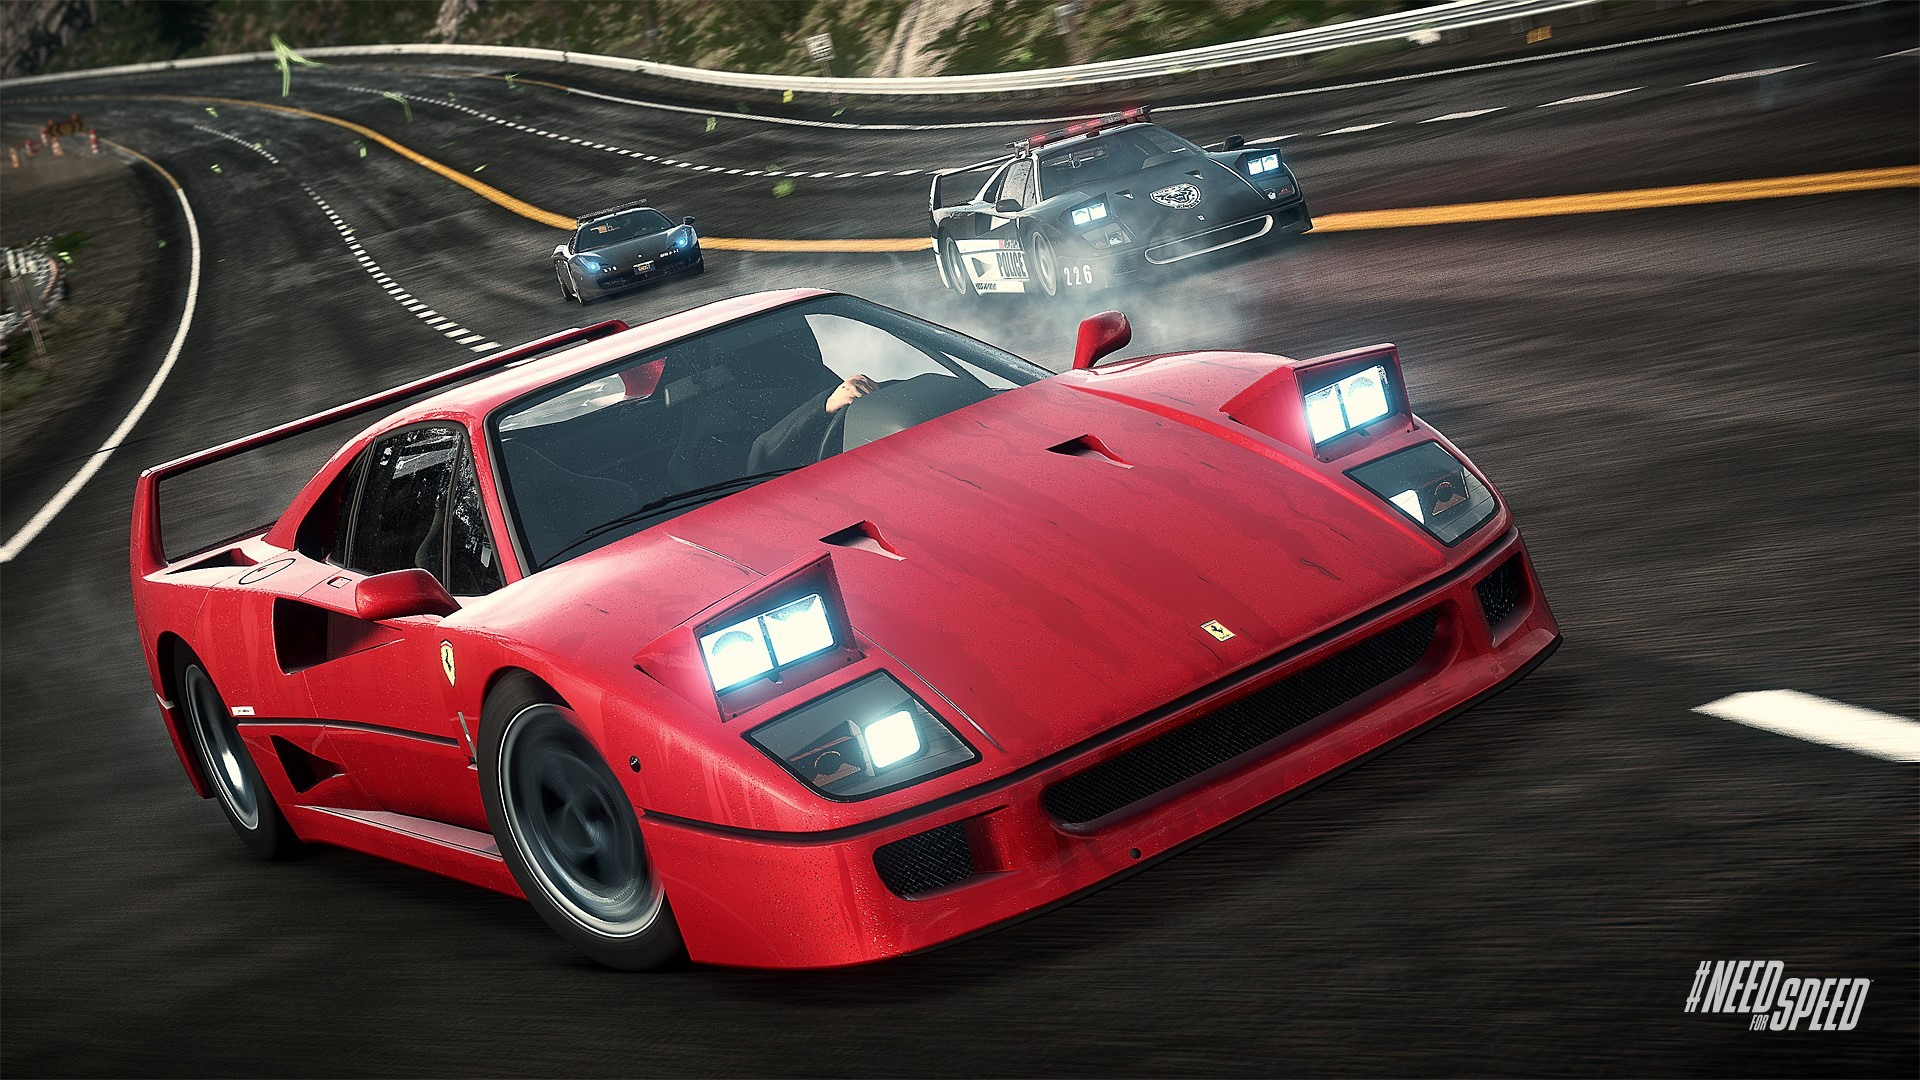 Best Tuning Car In Need For Speed Most Wanted